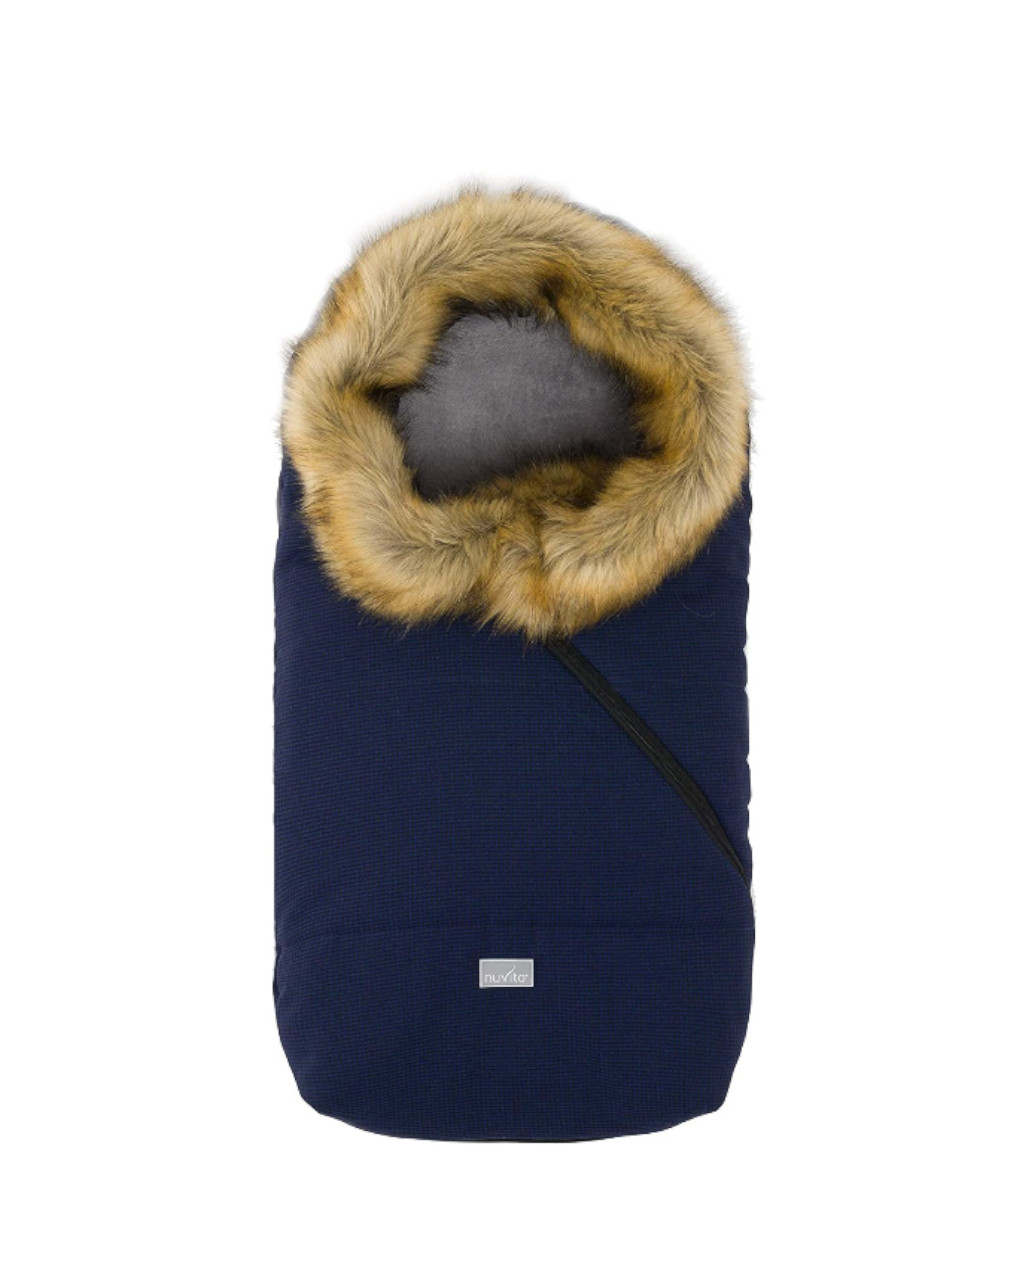 Ovetto pop prince of wales with fur collar - Nuvita